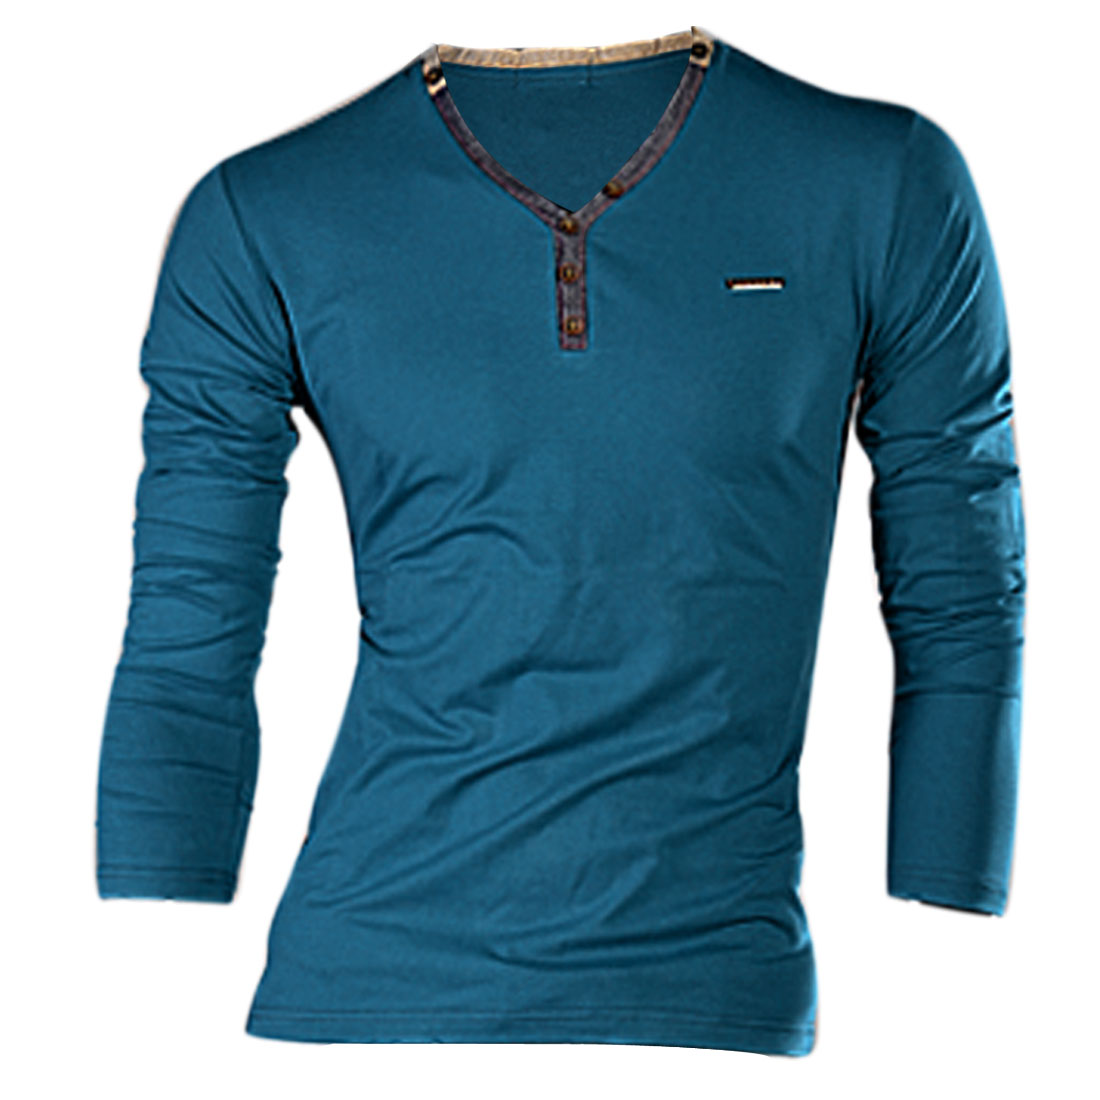 Man Fancy Teal Blue Color Buttons Decor Front Slim Fit Casual T-Shirt S